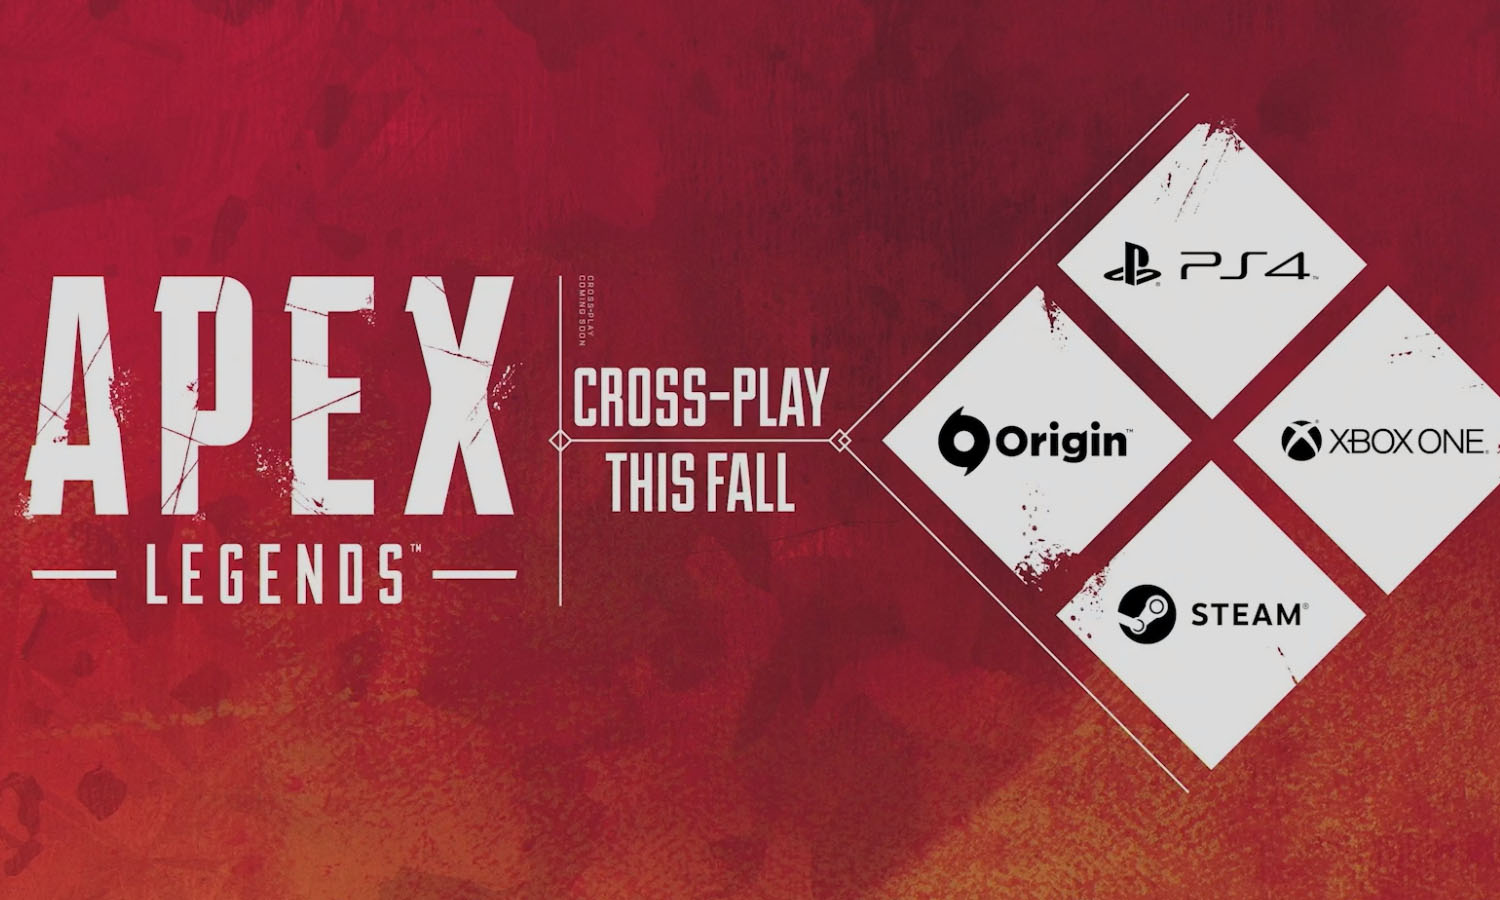 Apex Legends is coming to Switch alongside of cross-play screenshot